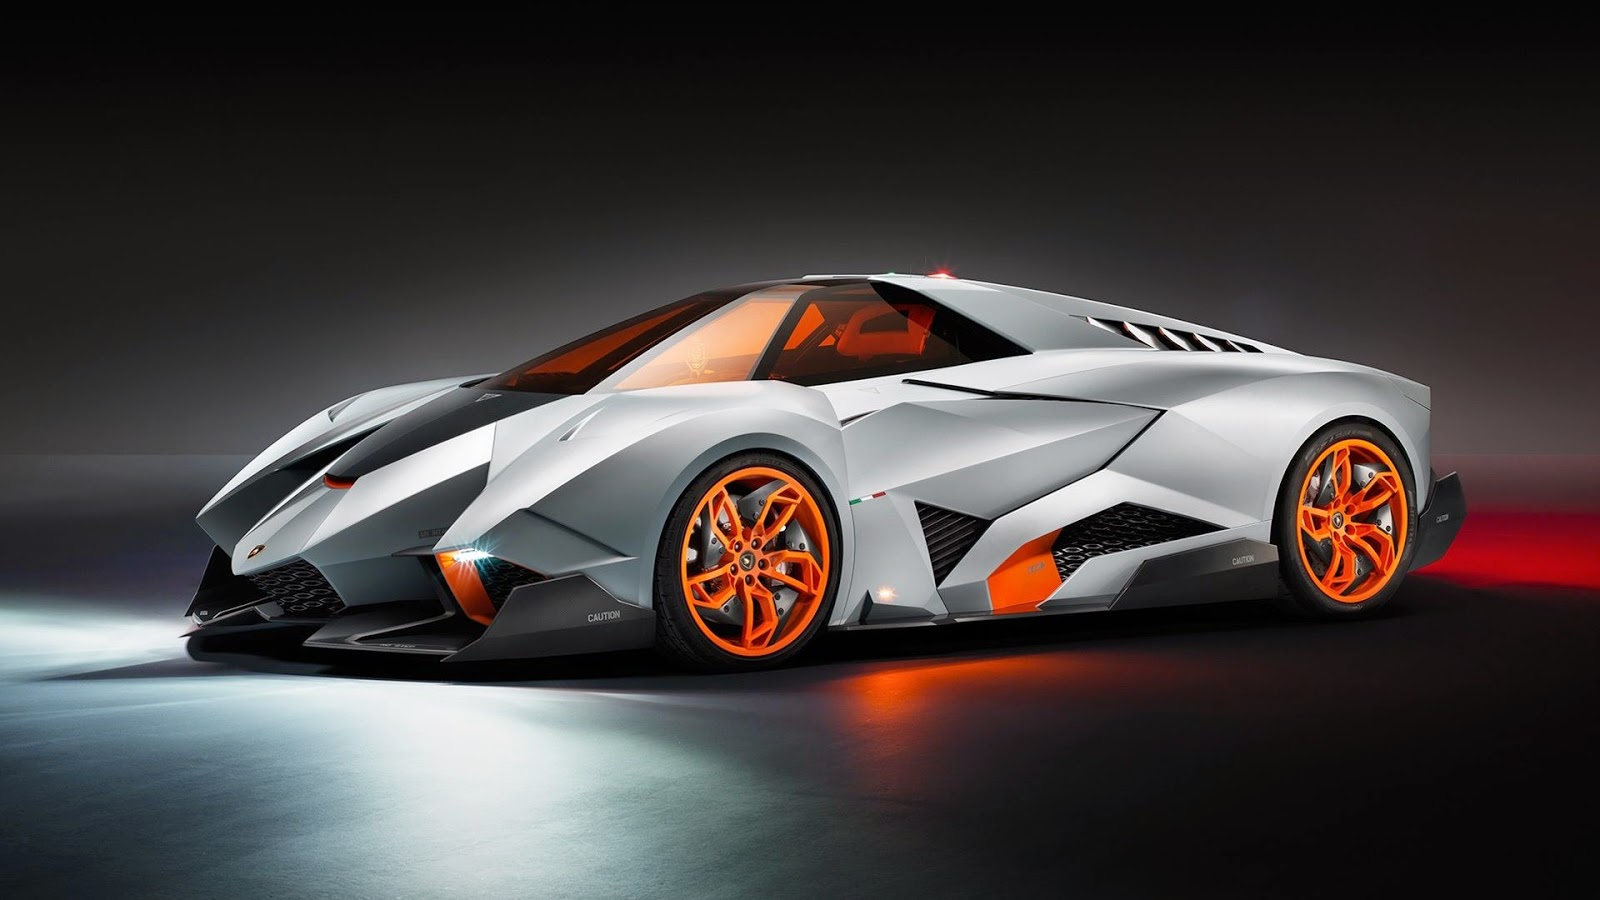 Coolest Cars In The World Lessons Tes Teach